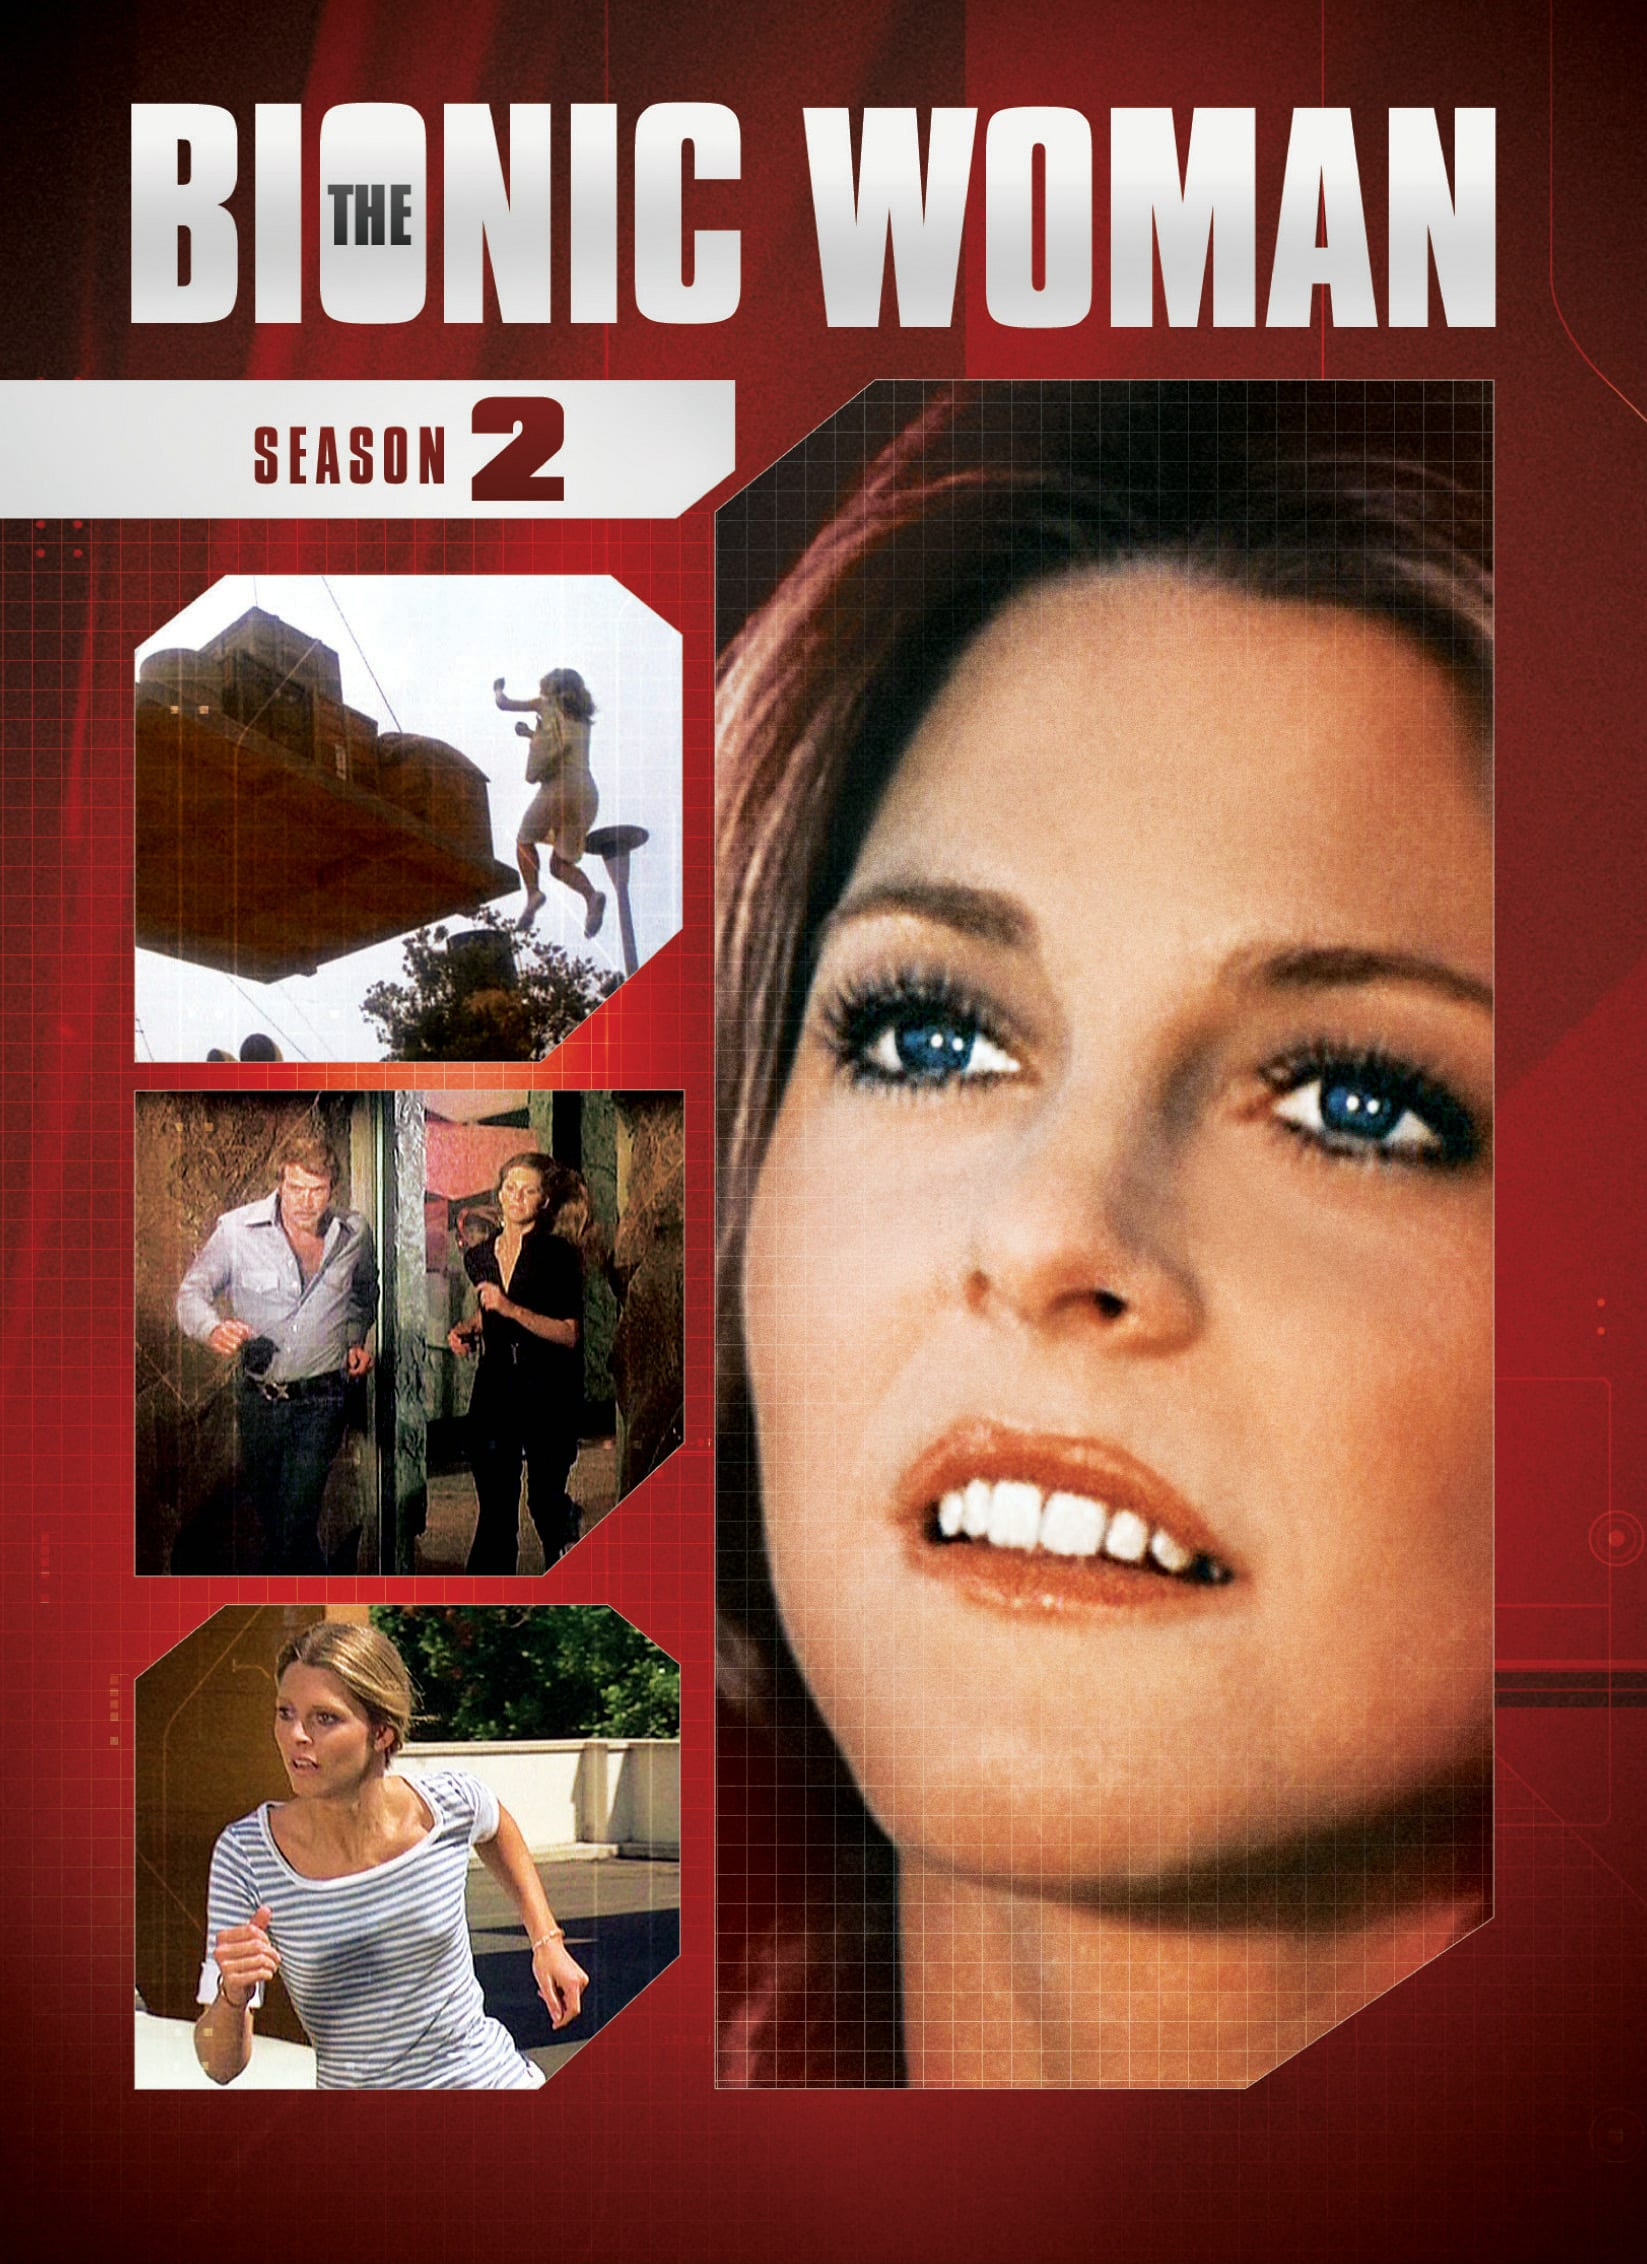 The Bionic Woman: Season 2 (2011) [DVD]